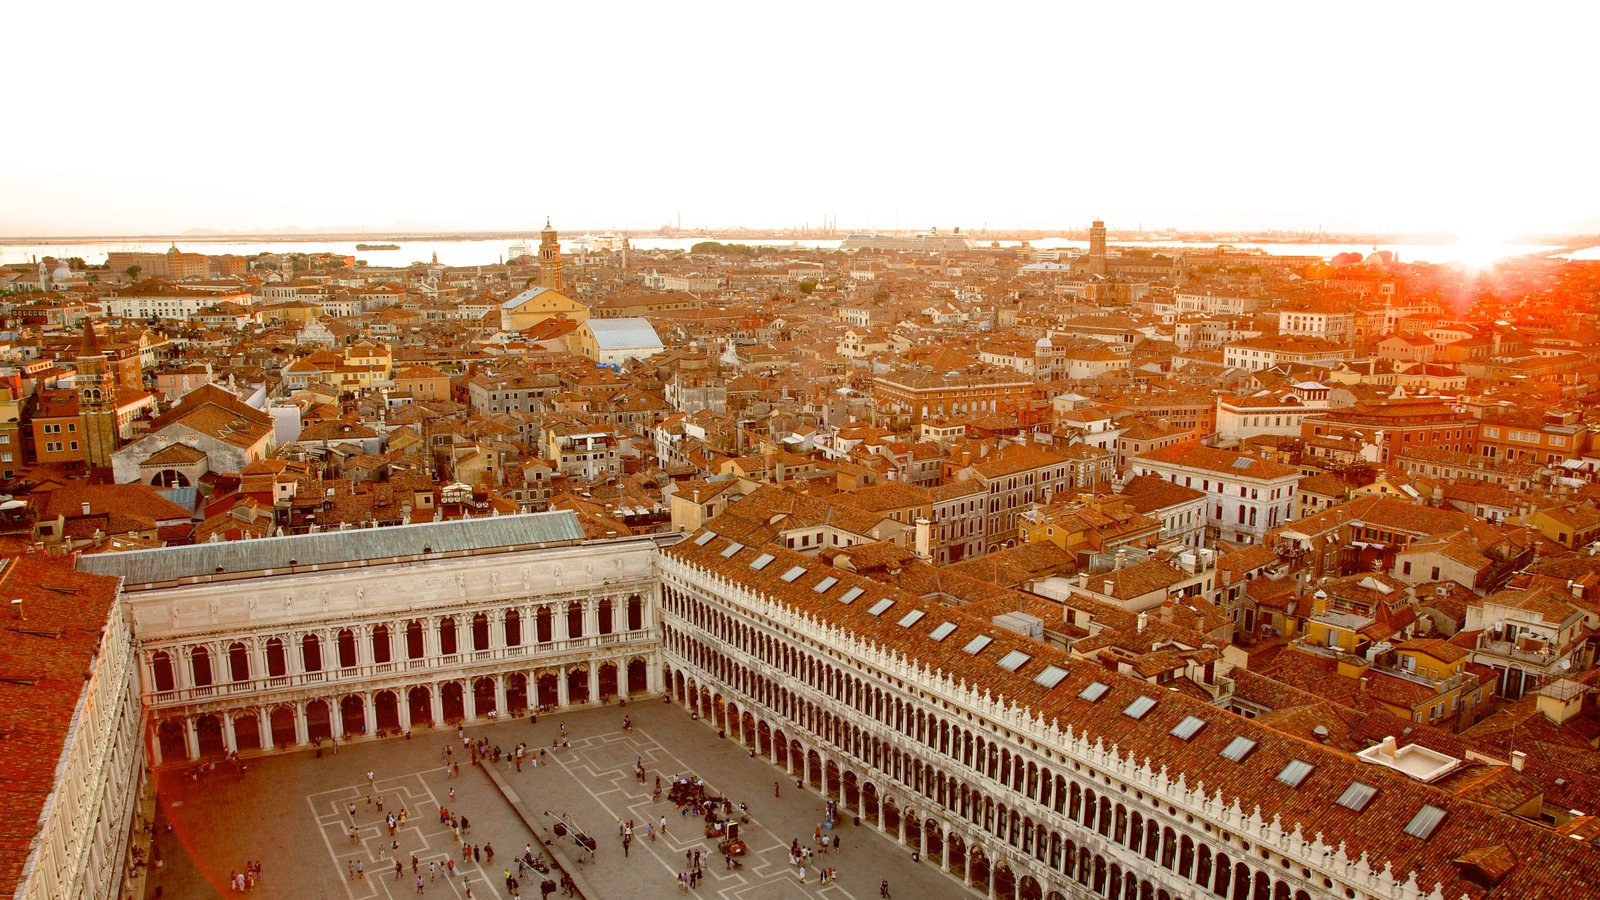 St Mark\'s Campanile which includes a square or plaza, heritage architecture and a coastal town